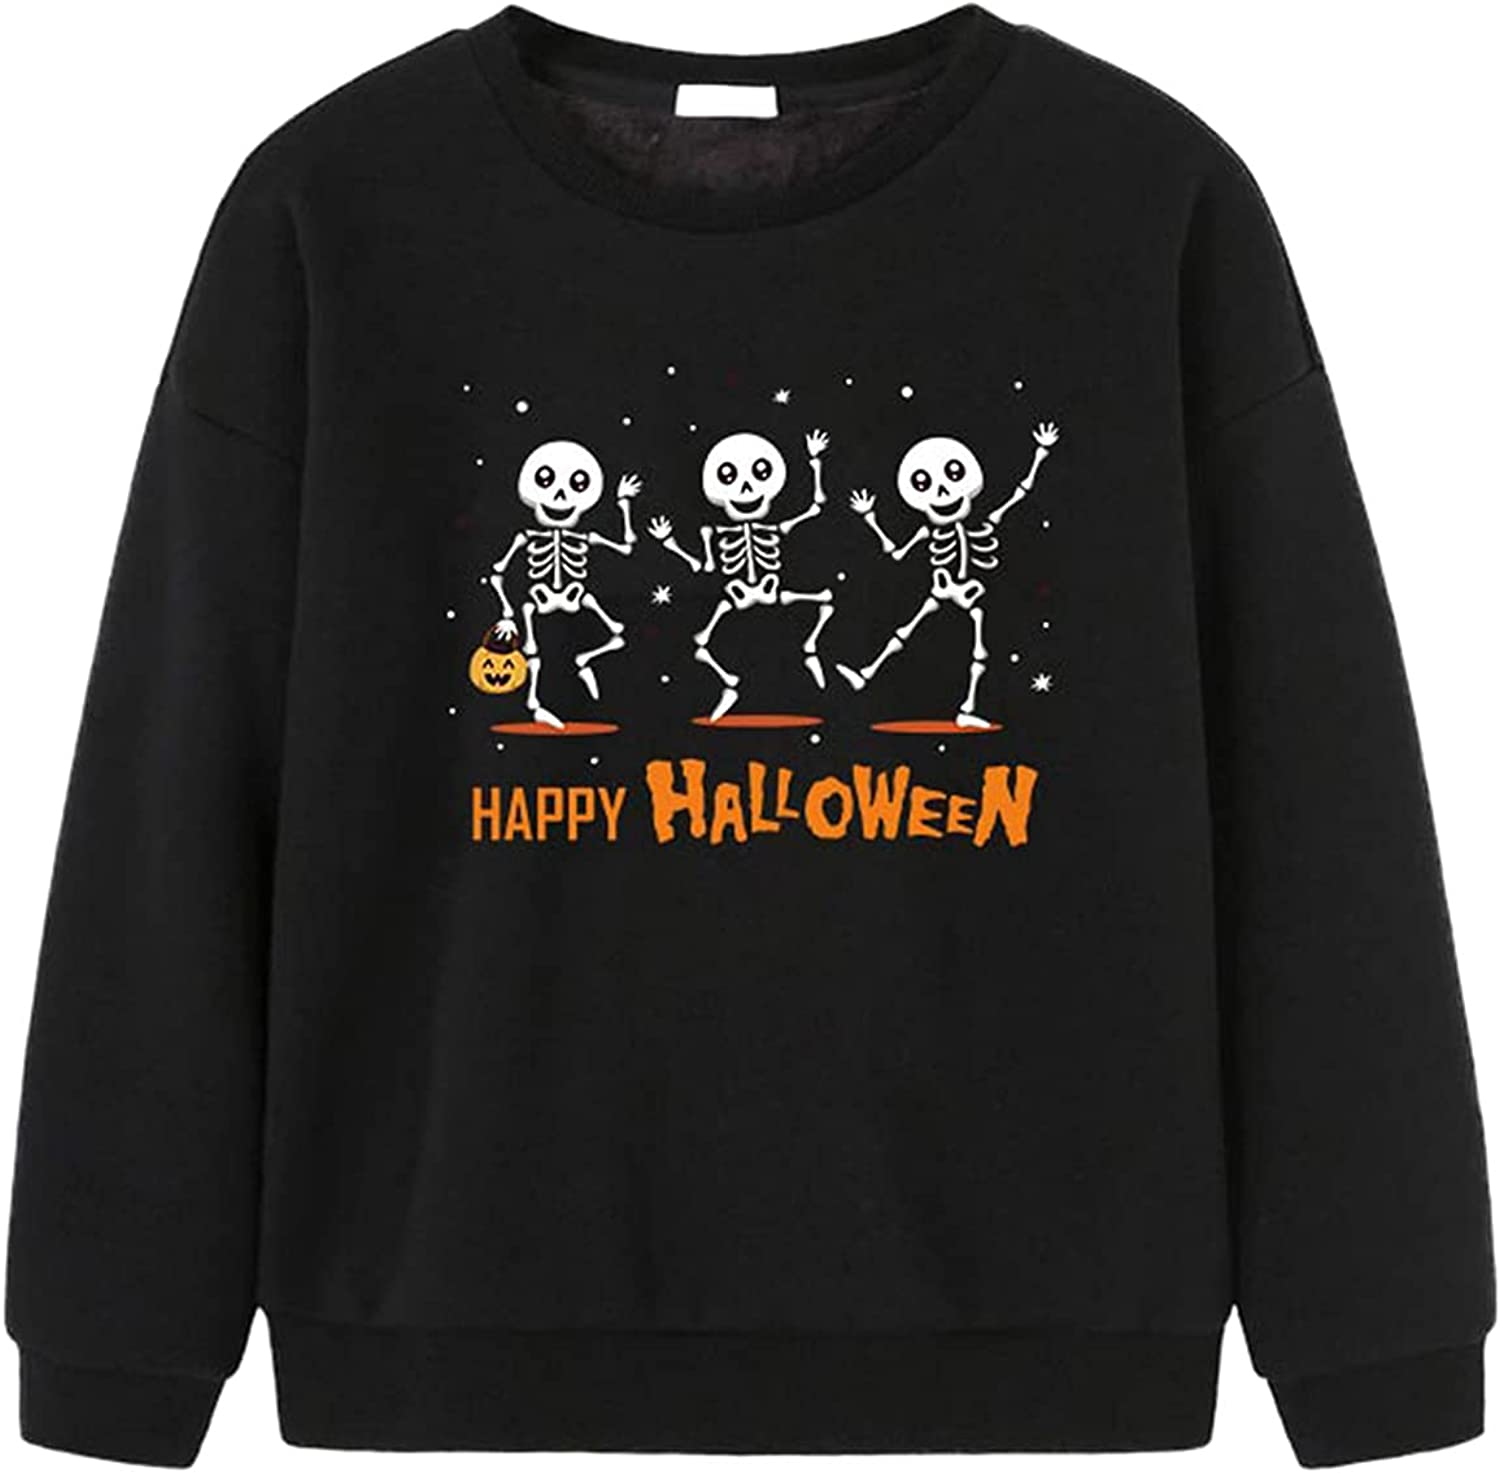 2021 latest Children's Halloween Casual Stylish 100% quality warranty Pullover Long-Sleeved